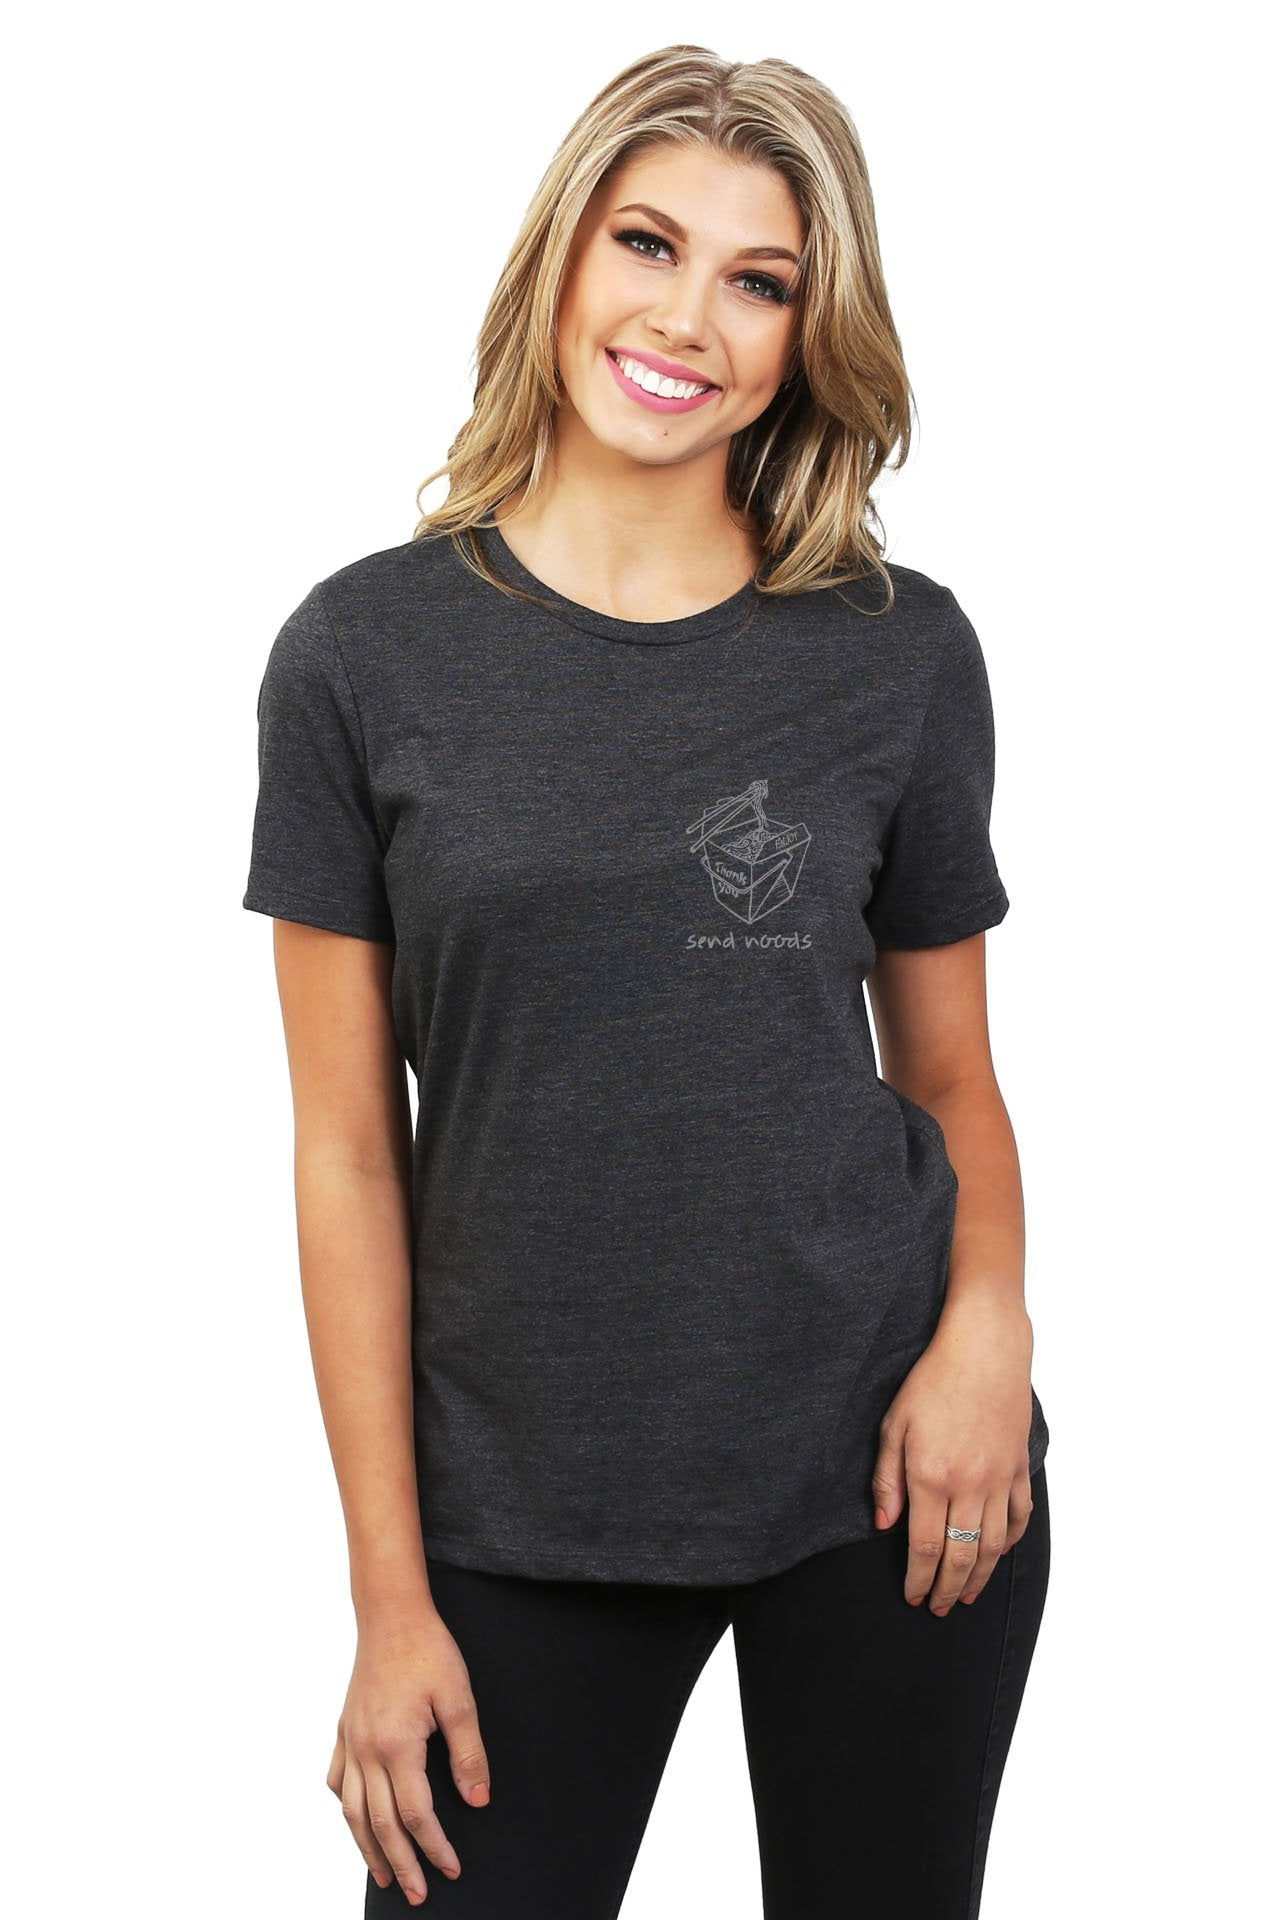 Send Noods Women's Relaxed Crewneck T-Shirt Top Tee Charcoal Grey